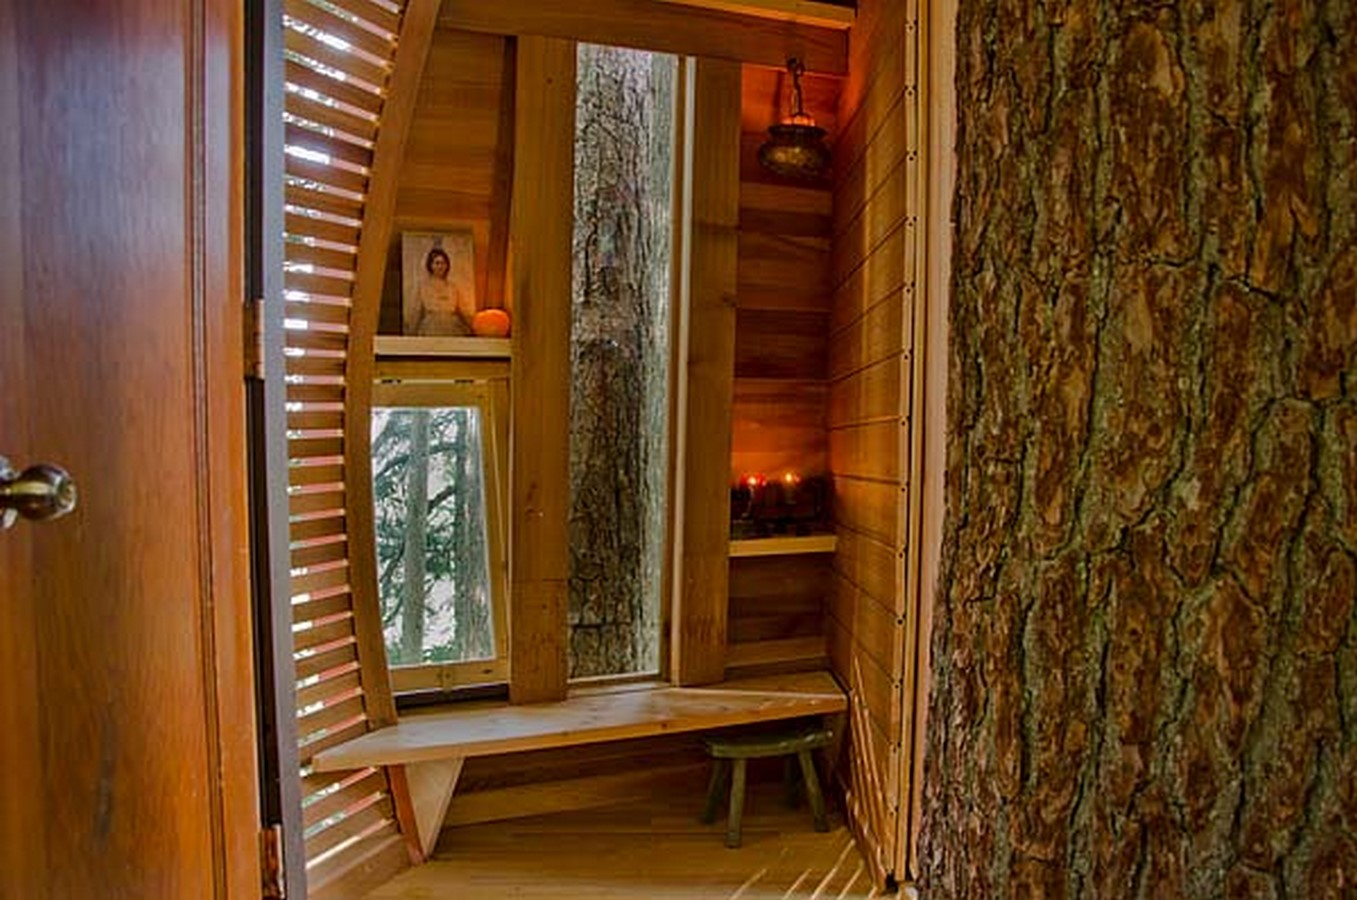 15 Examples of Tiny-home designs - Sheet33